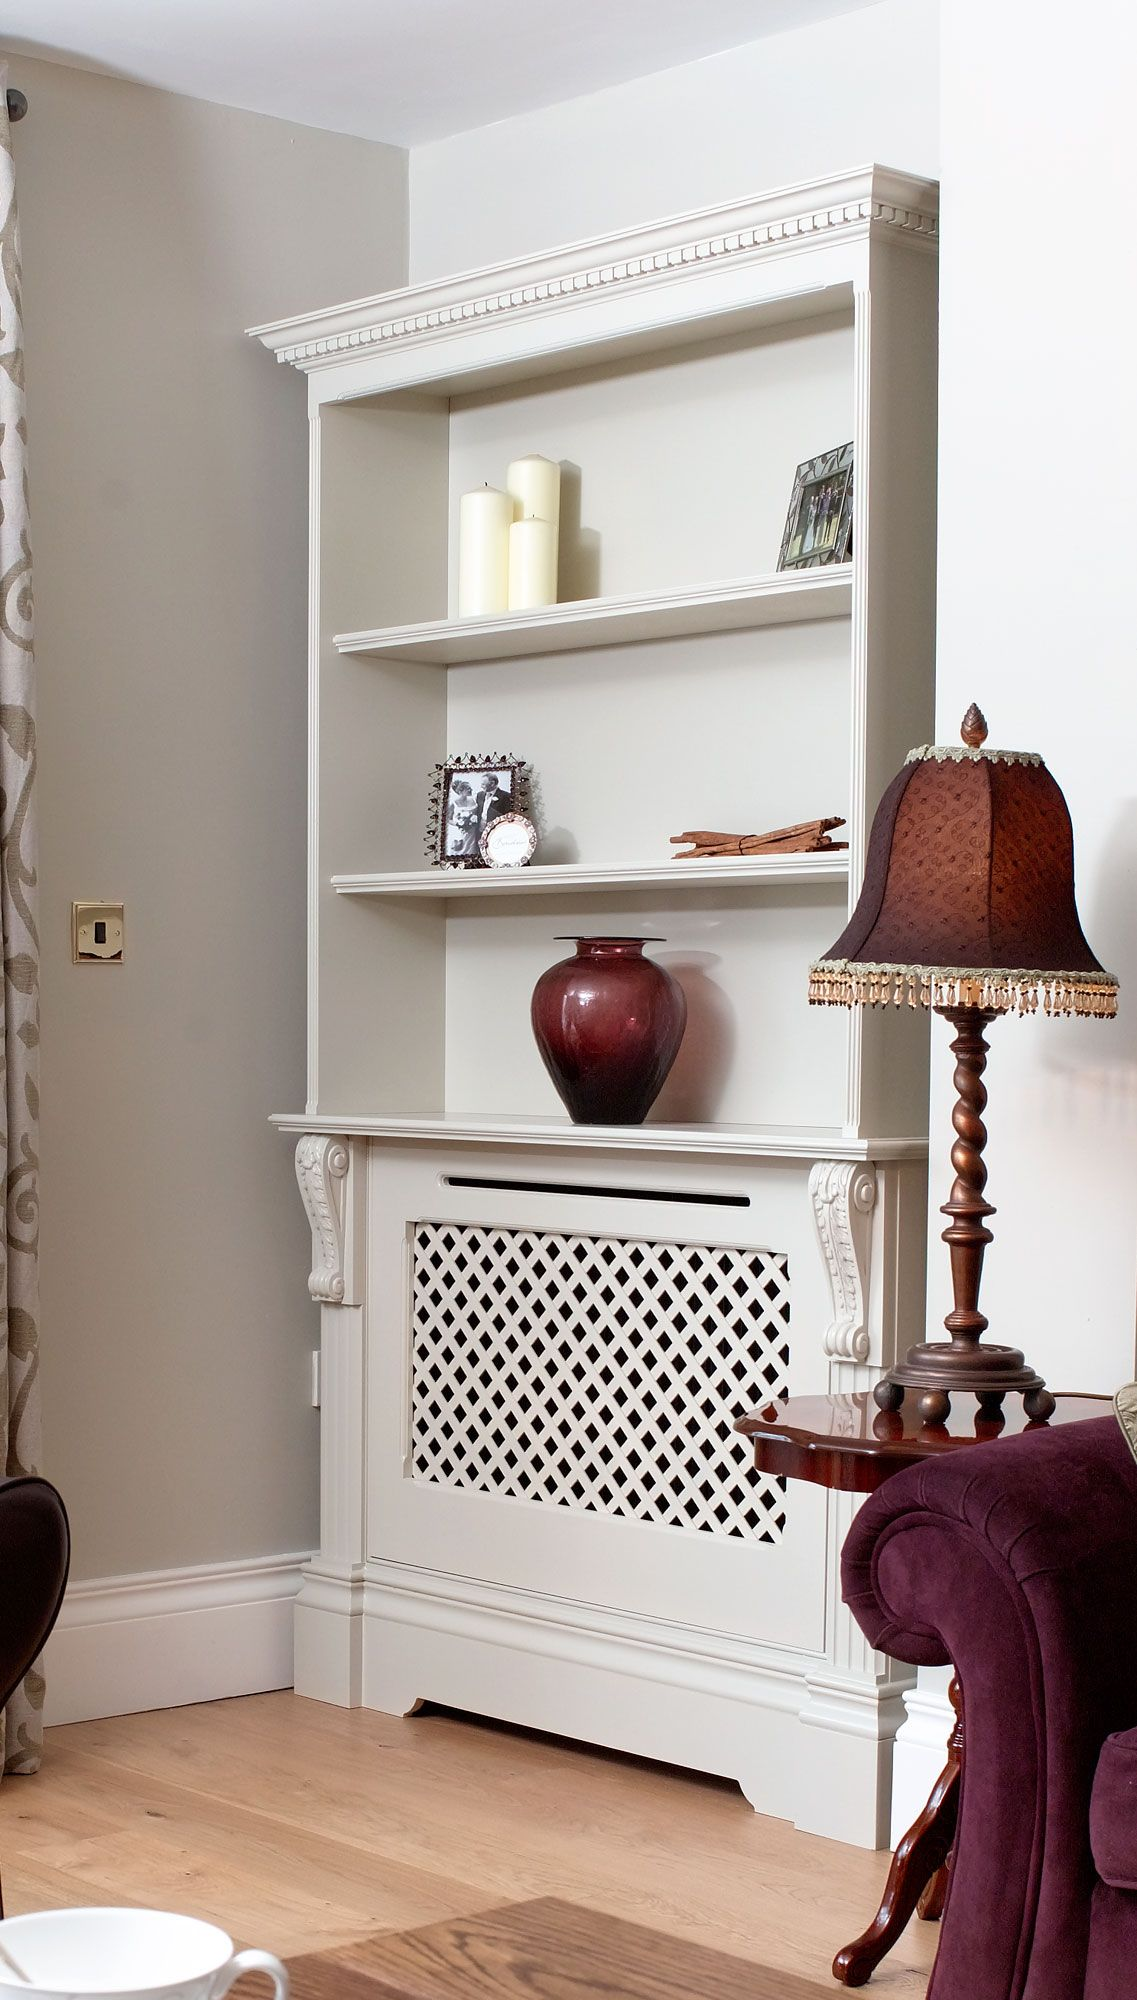 Modern Interior Decorating With Colorful Radiators And Attractive